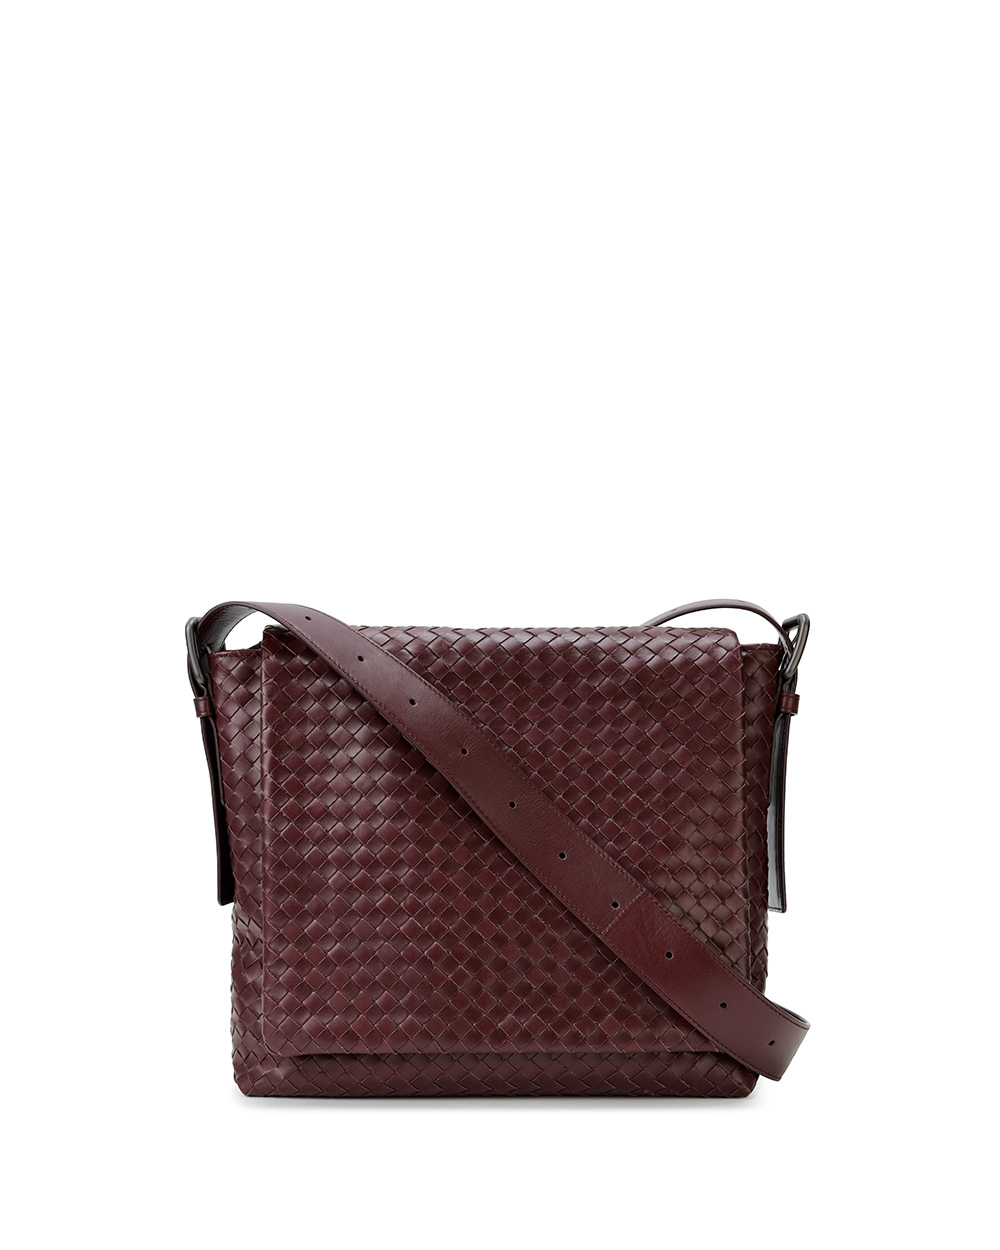 Woven Leather Crossbody Messenger Bag